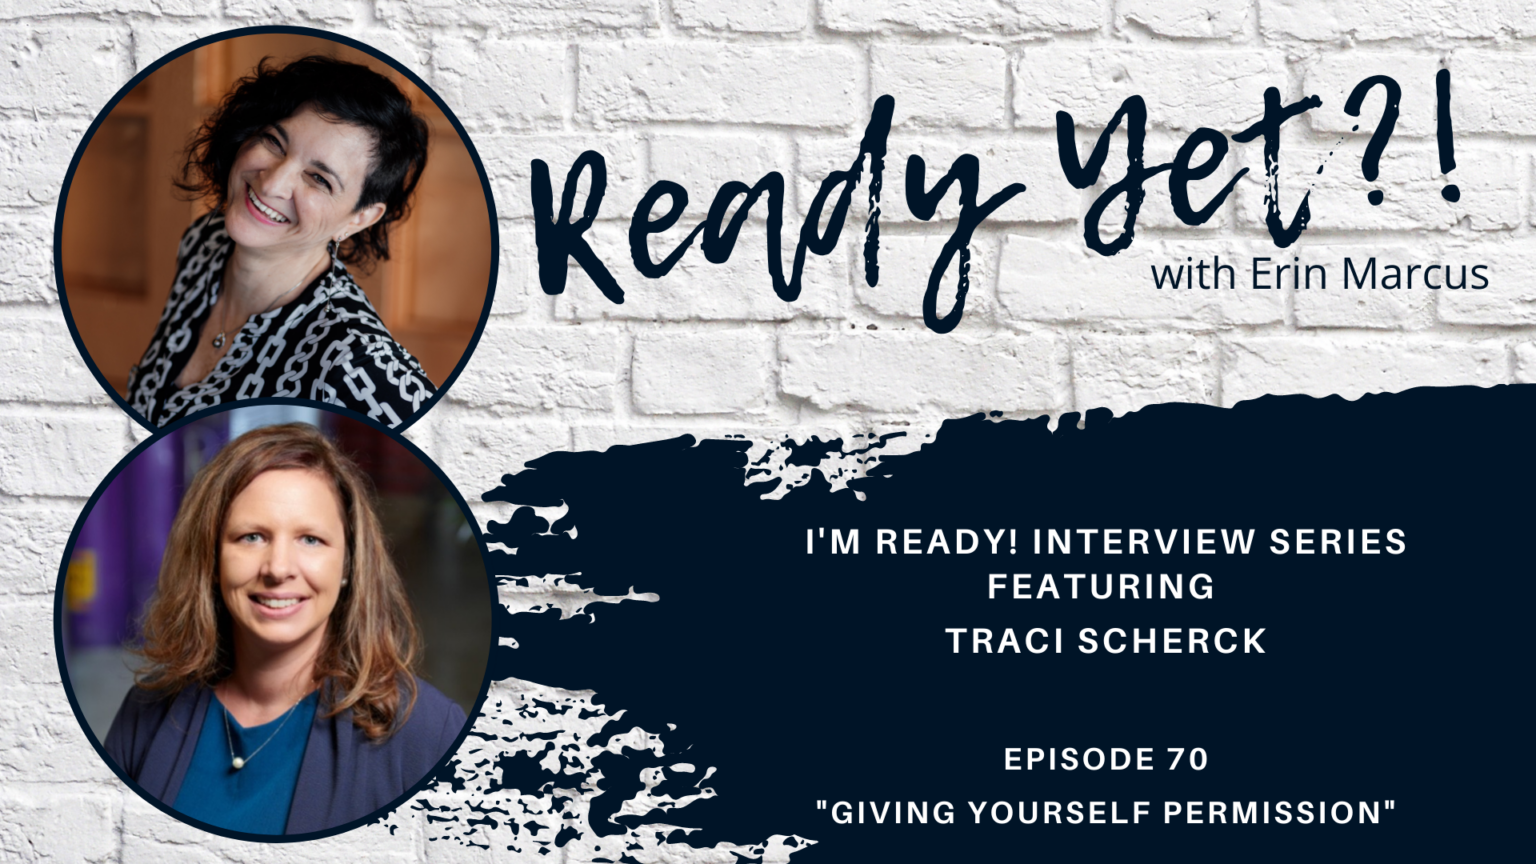 Episode 70 Interview with Traci Scherck: Giving Yourself Permission